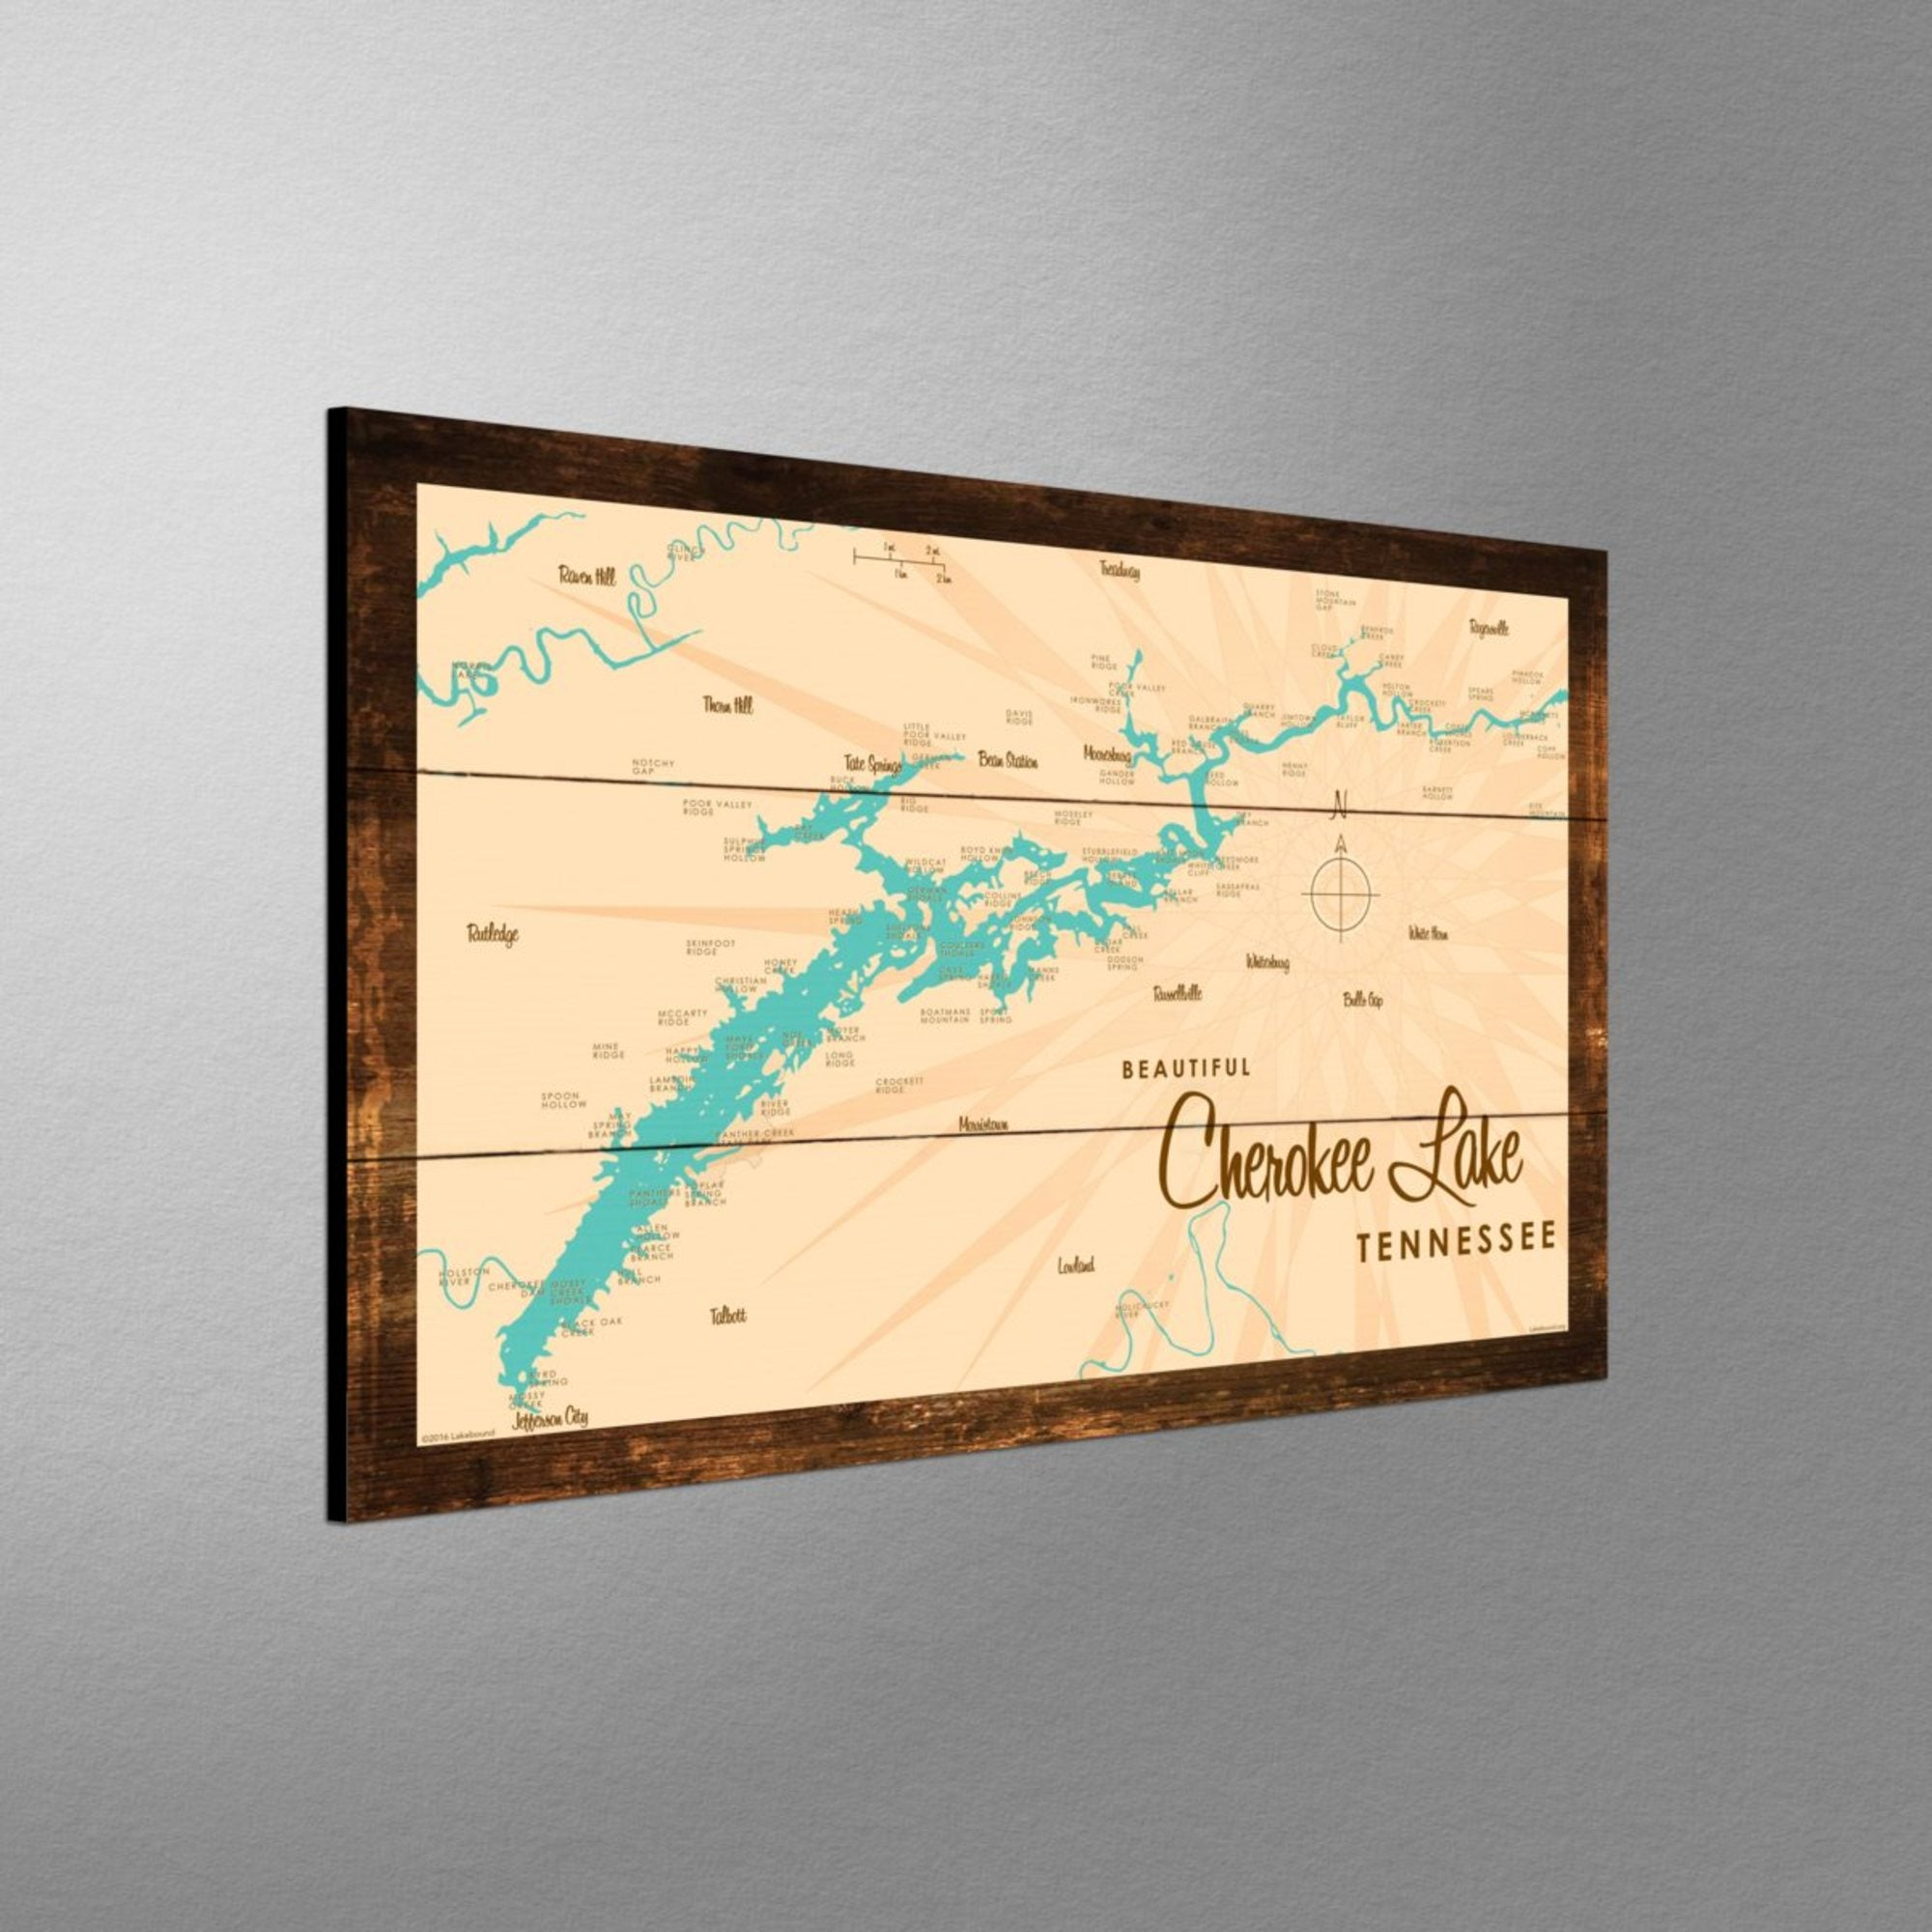 Cherokee Lake Tennessee, Rustic Wood Sign Map Art